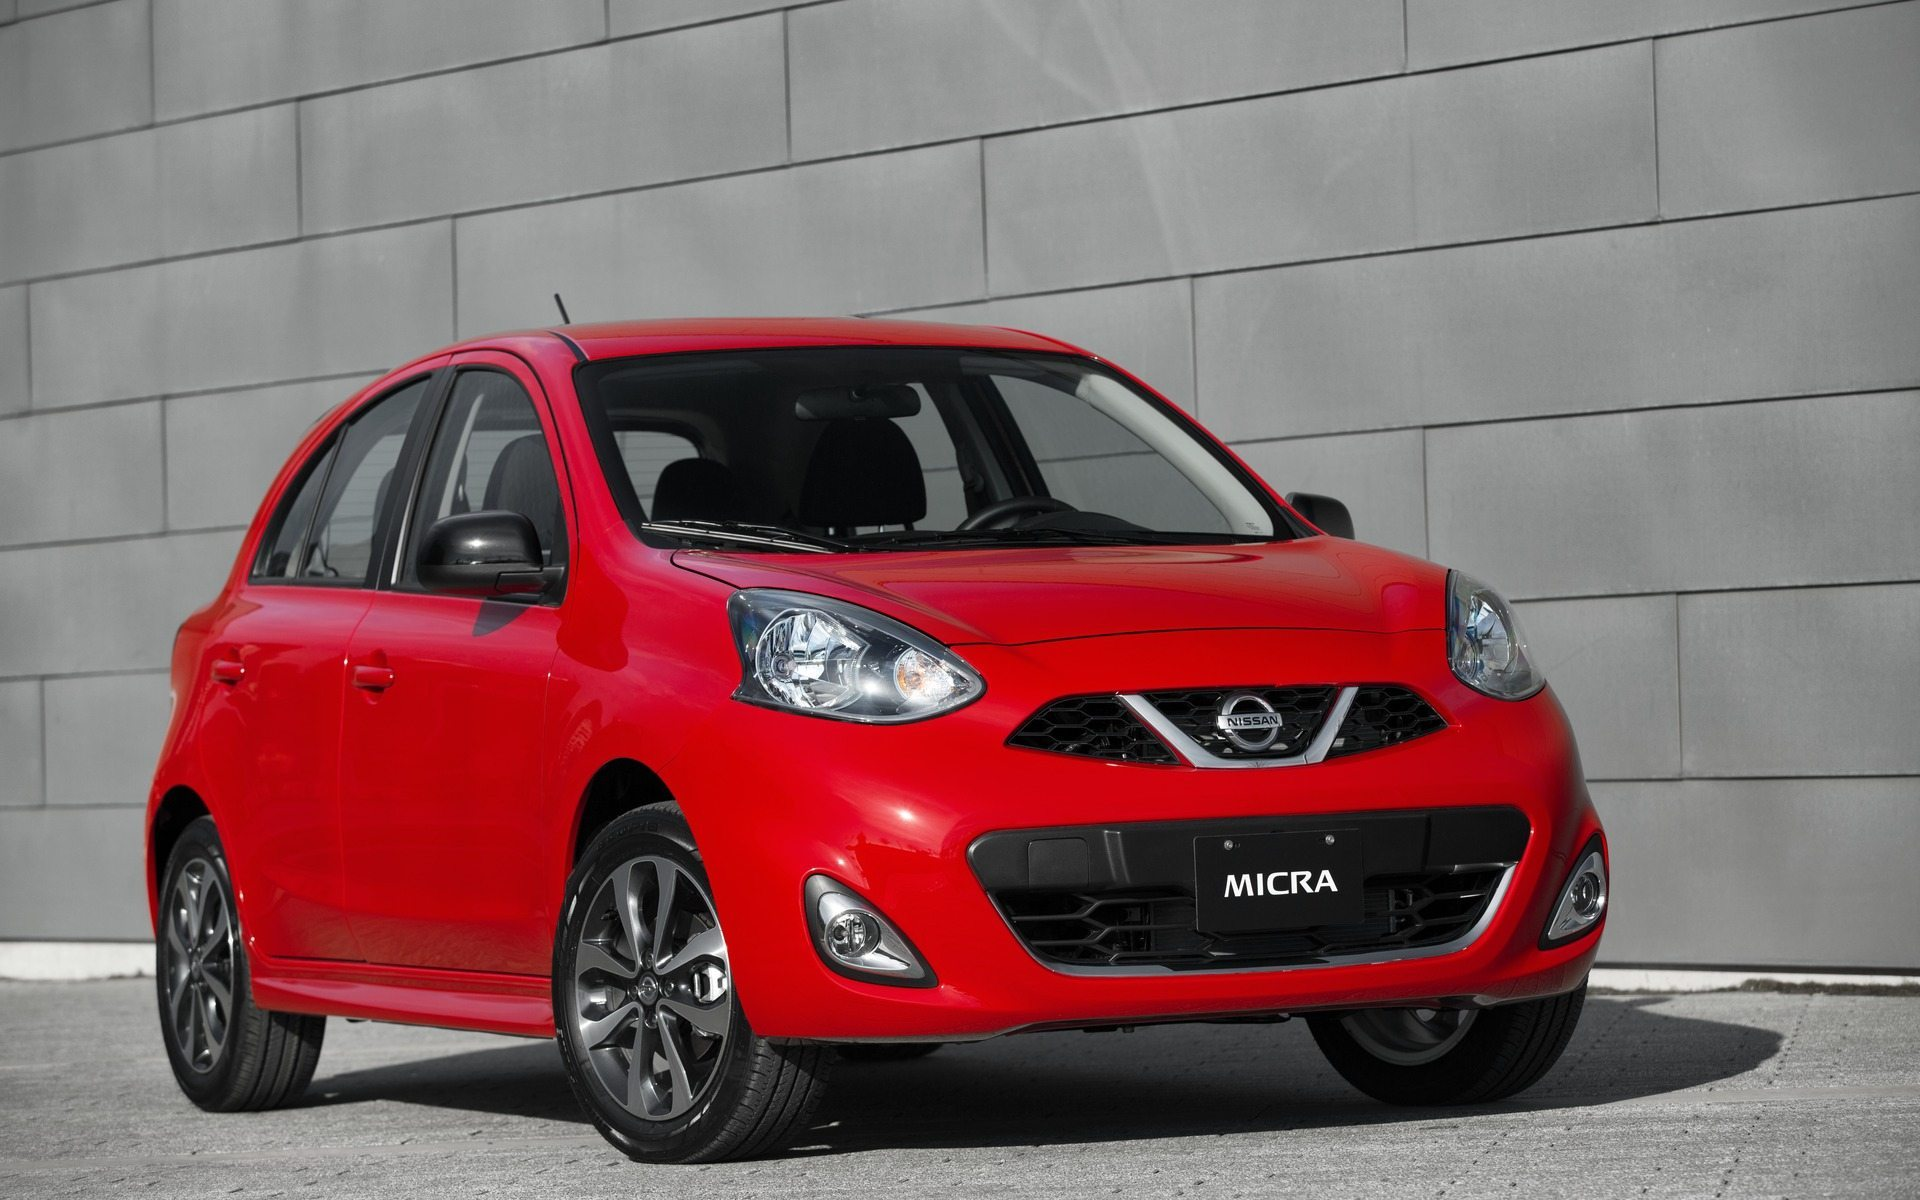 2017 nissan micra 1 5l s price in uae specs review in dubai abu dhabi sharjah. Black Bedroom Furniture Sets. Home Design Ideas